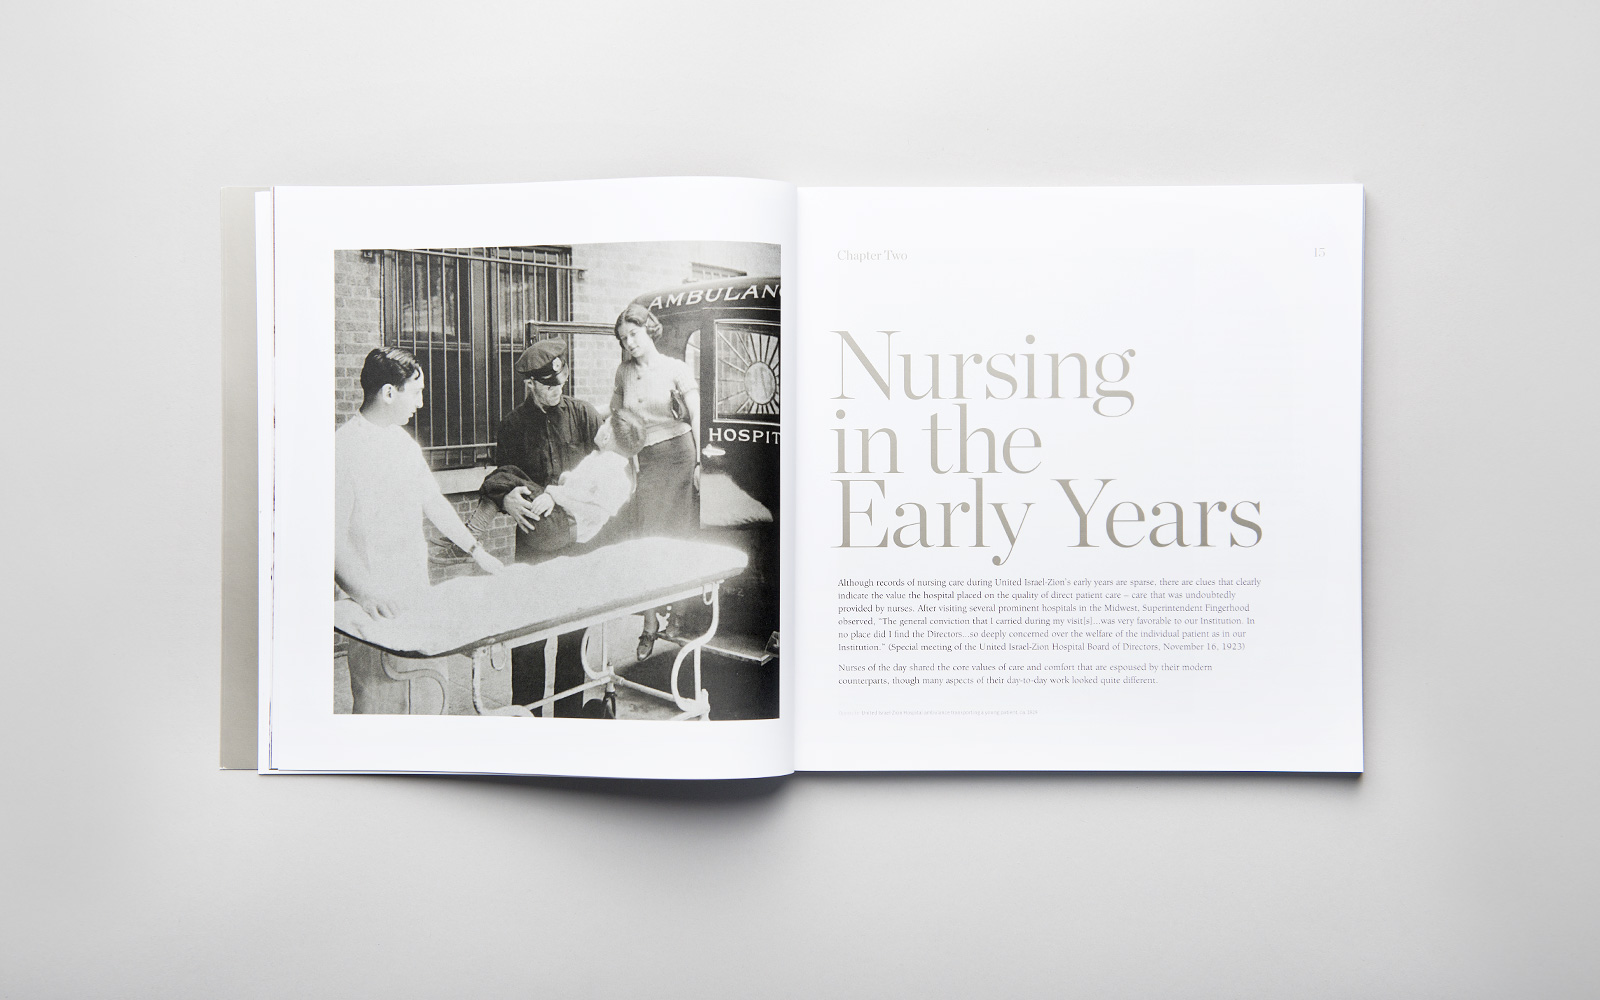 Nursing Centennial Book - Chapter 2 Introduction